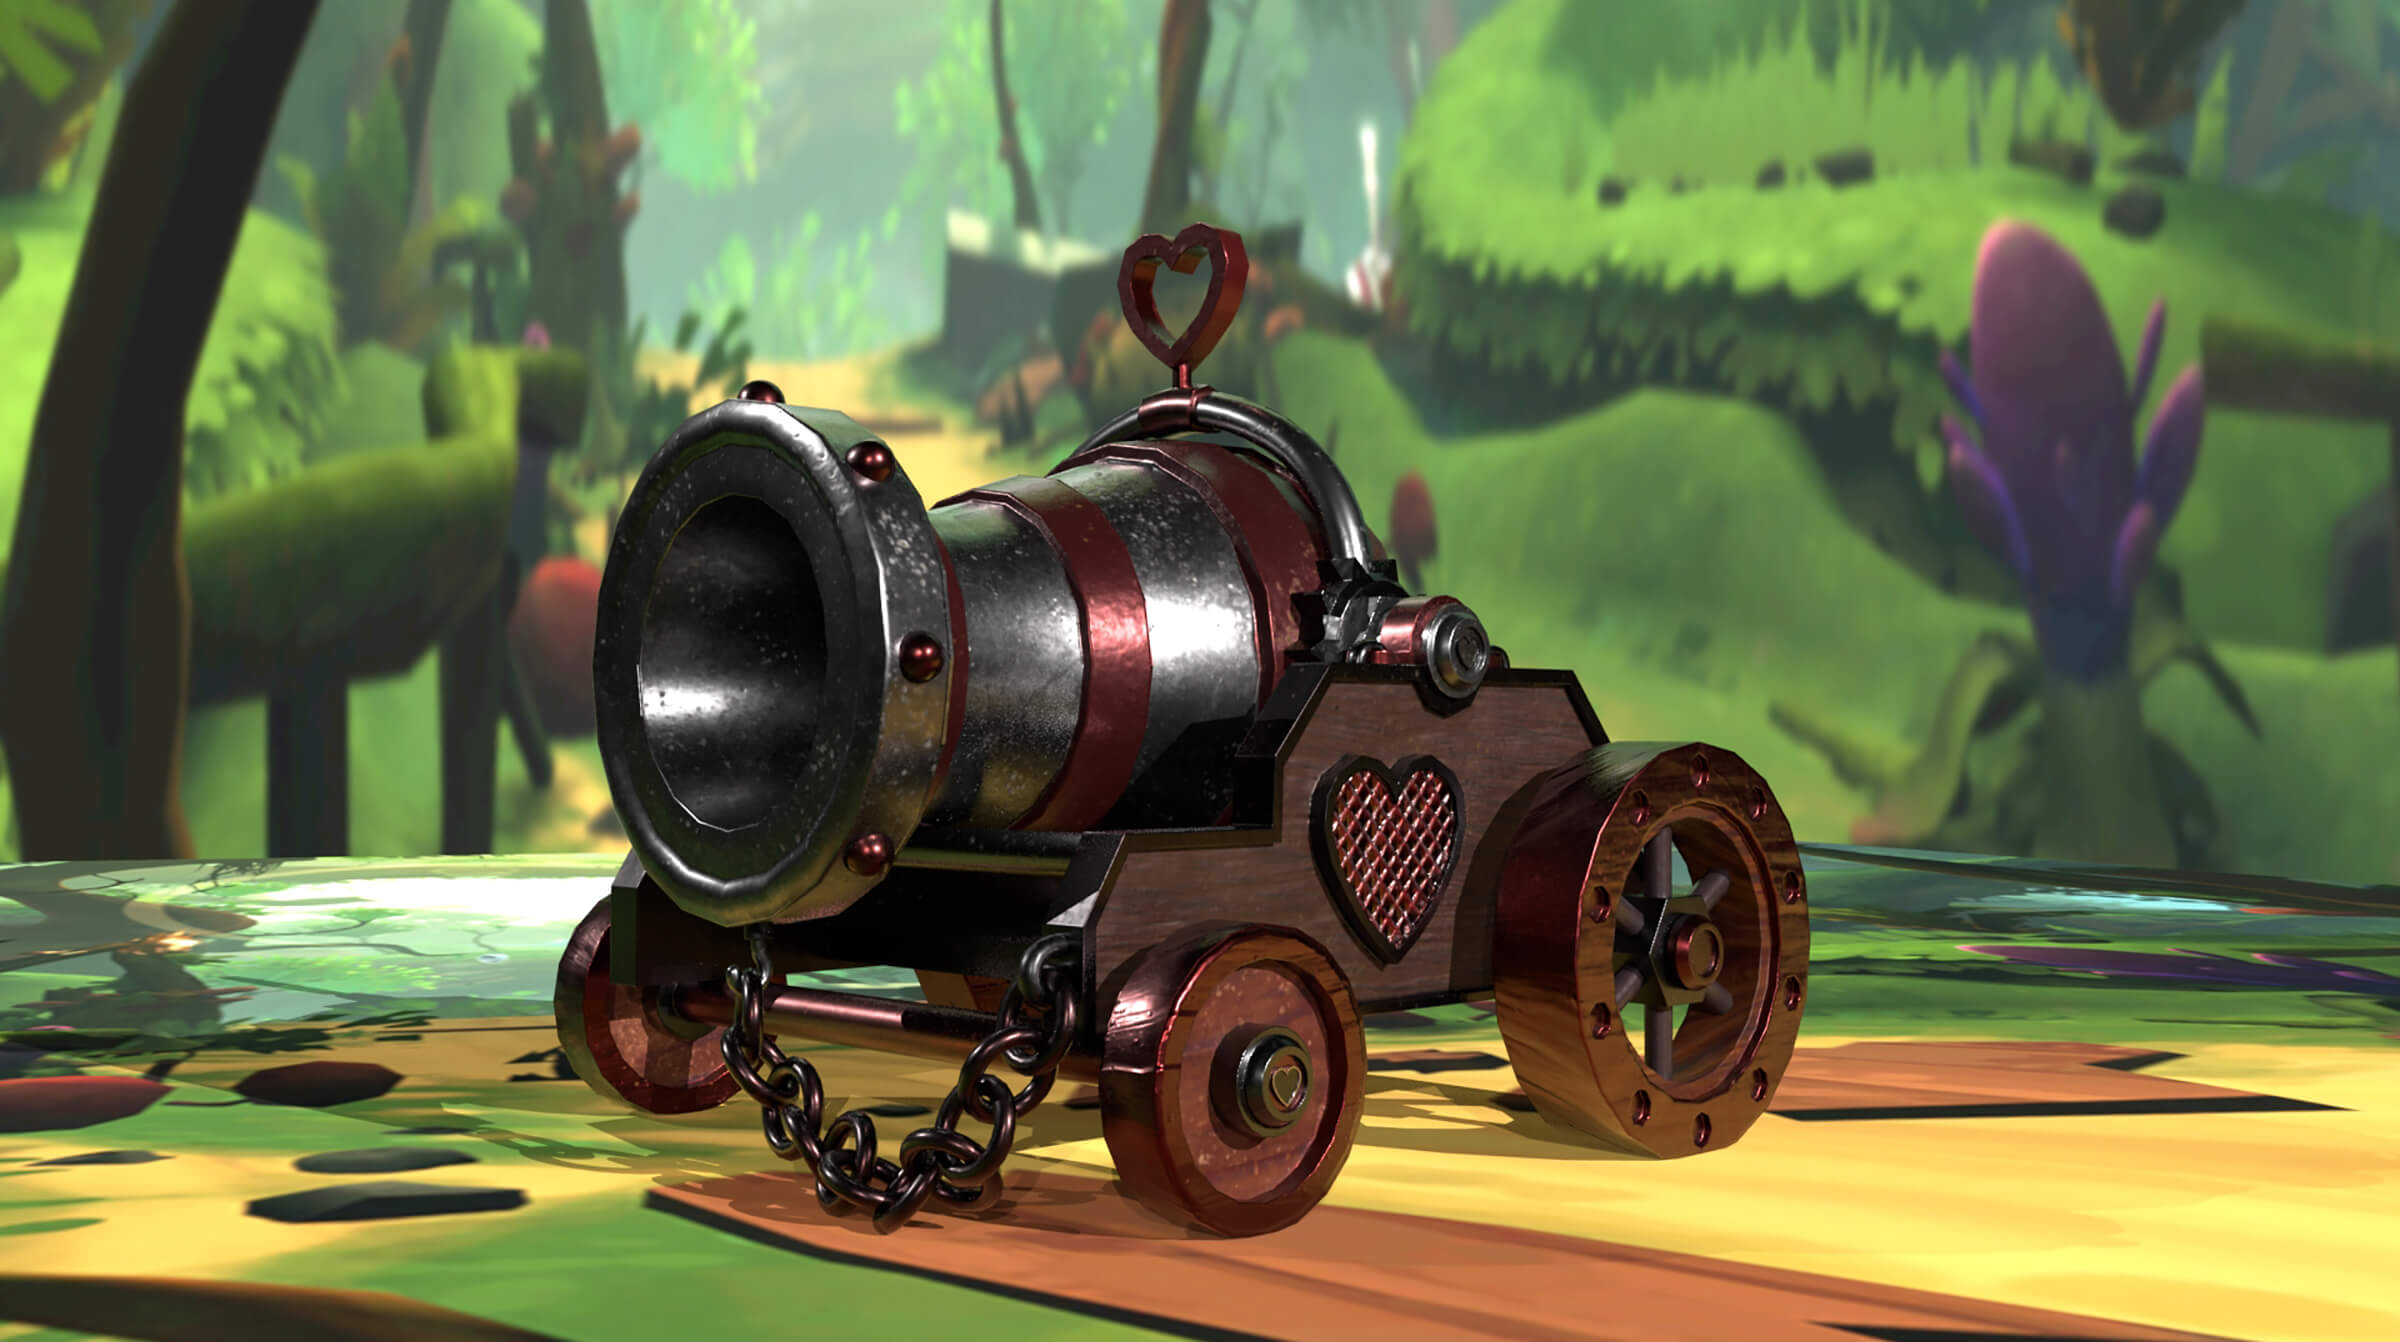 A cannon with a heart on its side in a cartoon world